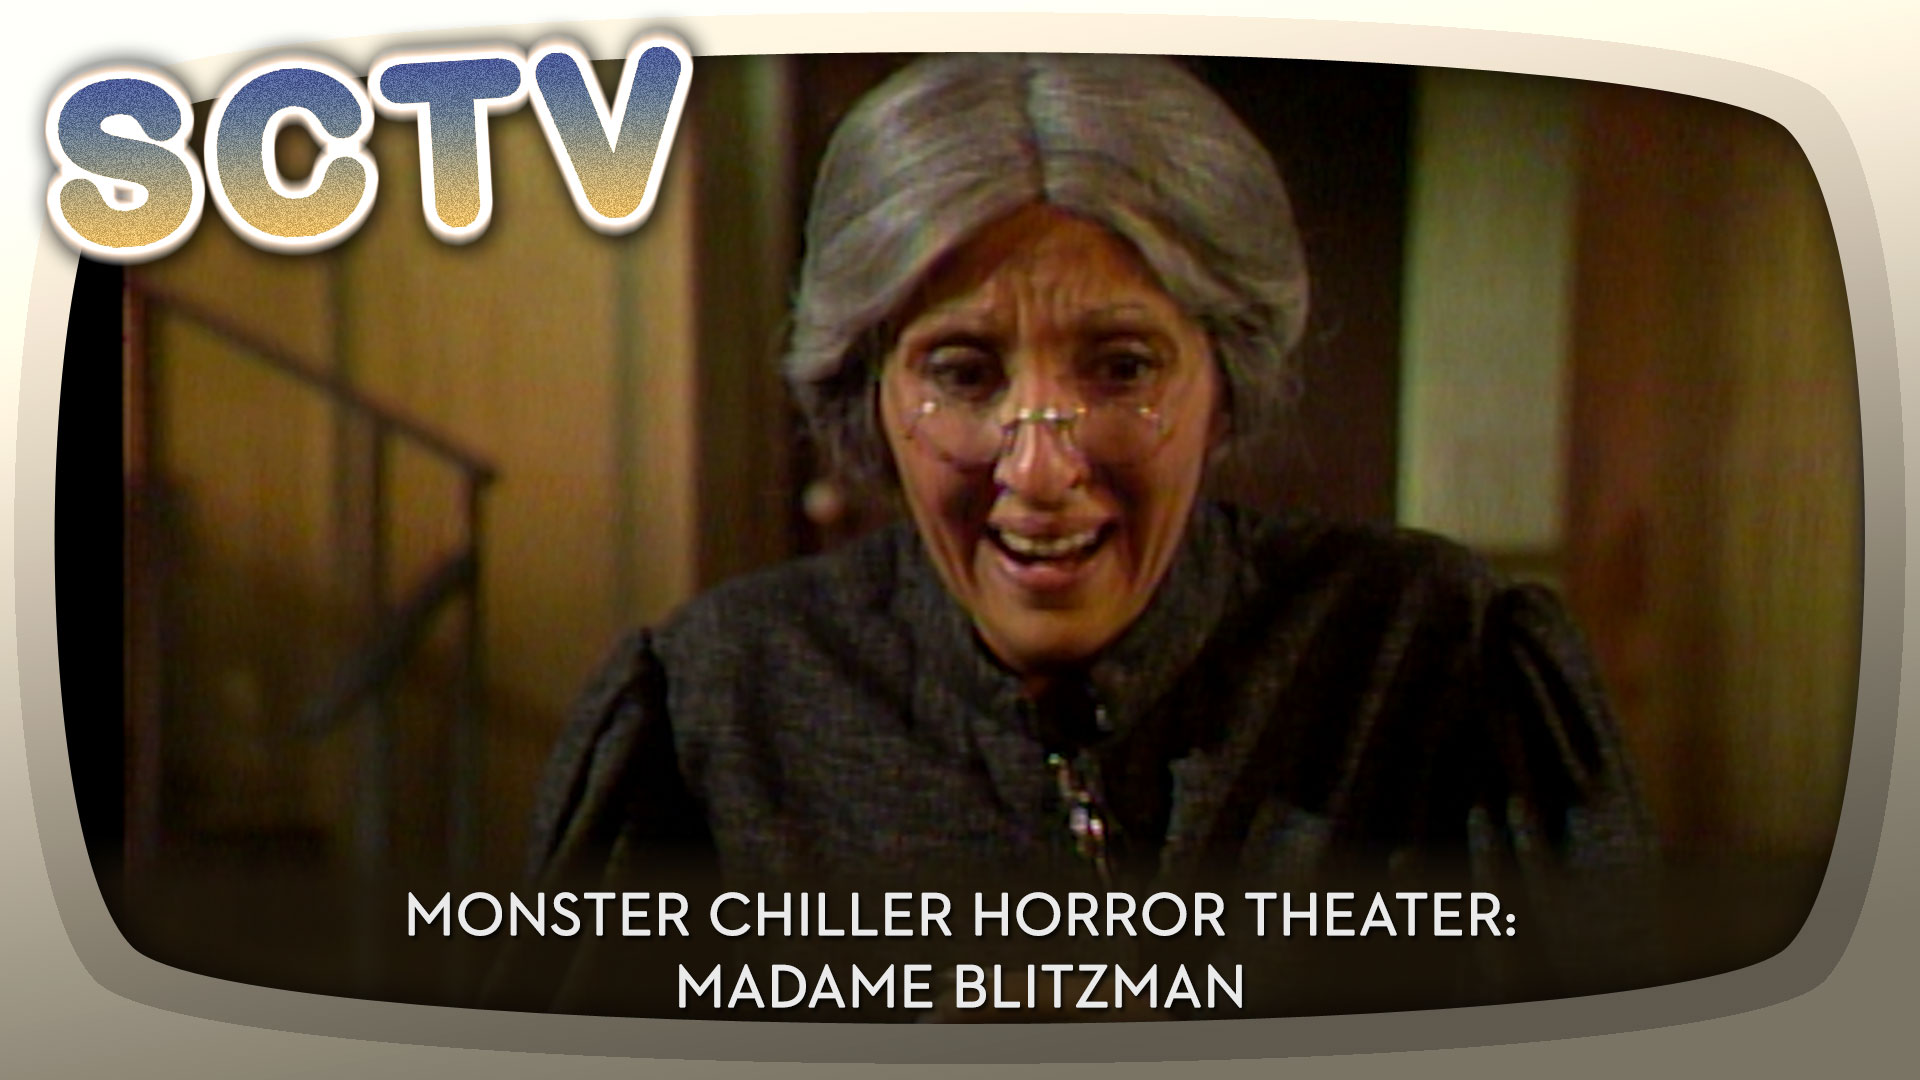 SCTV – Monster Chiller Horror Theater: Madame Blitzman